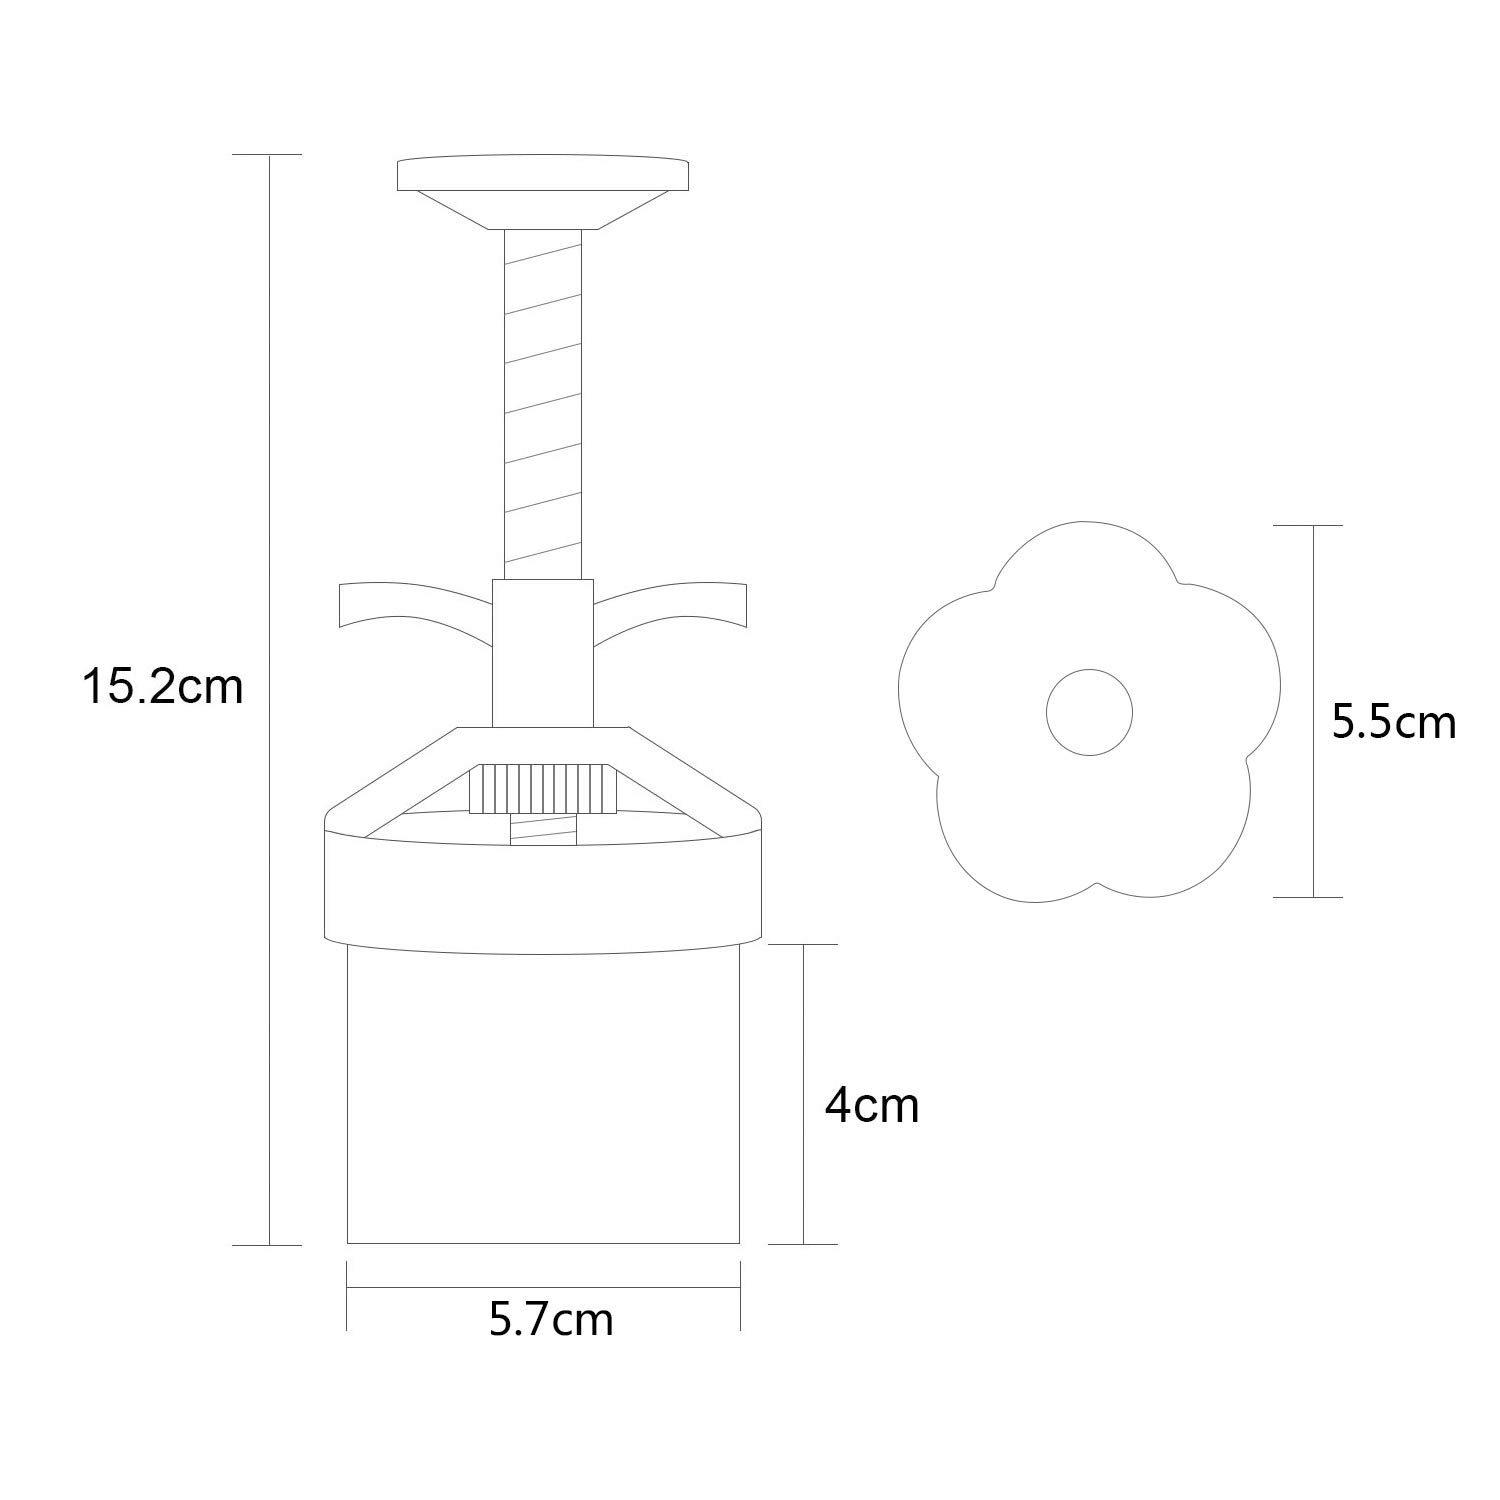 Adjustable Thickness,Easy to Clean Louty Mid-Autumn Festival DIY Mooncake Mold,Cookie Press with 65g 6pcs stamps